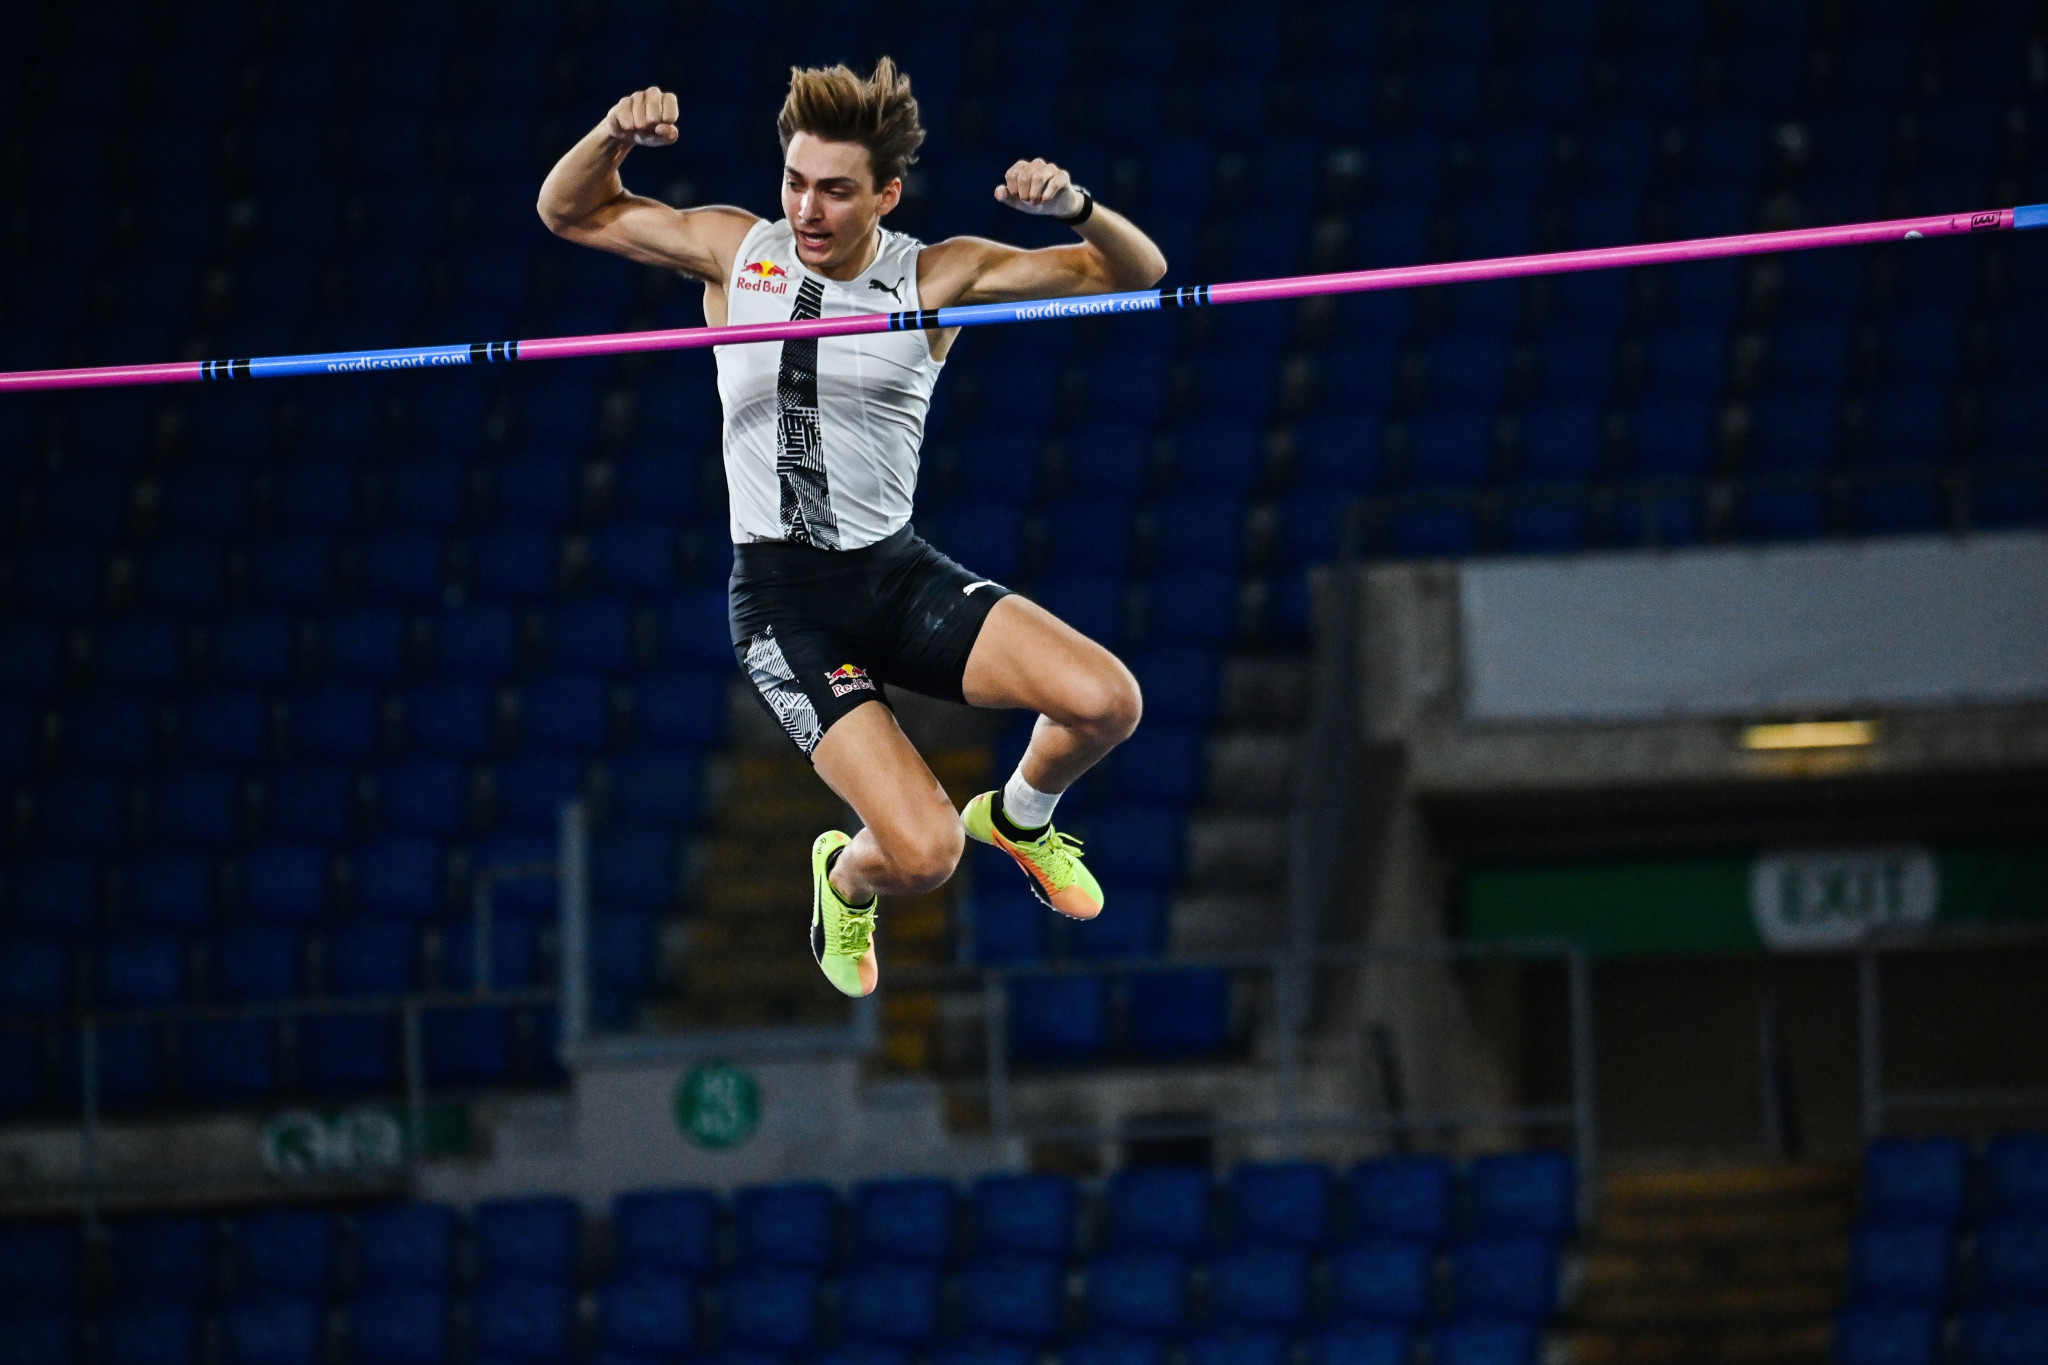 Pole vault star Duplantis among five finalists for Male World Athlete of the Year 2020